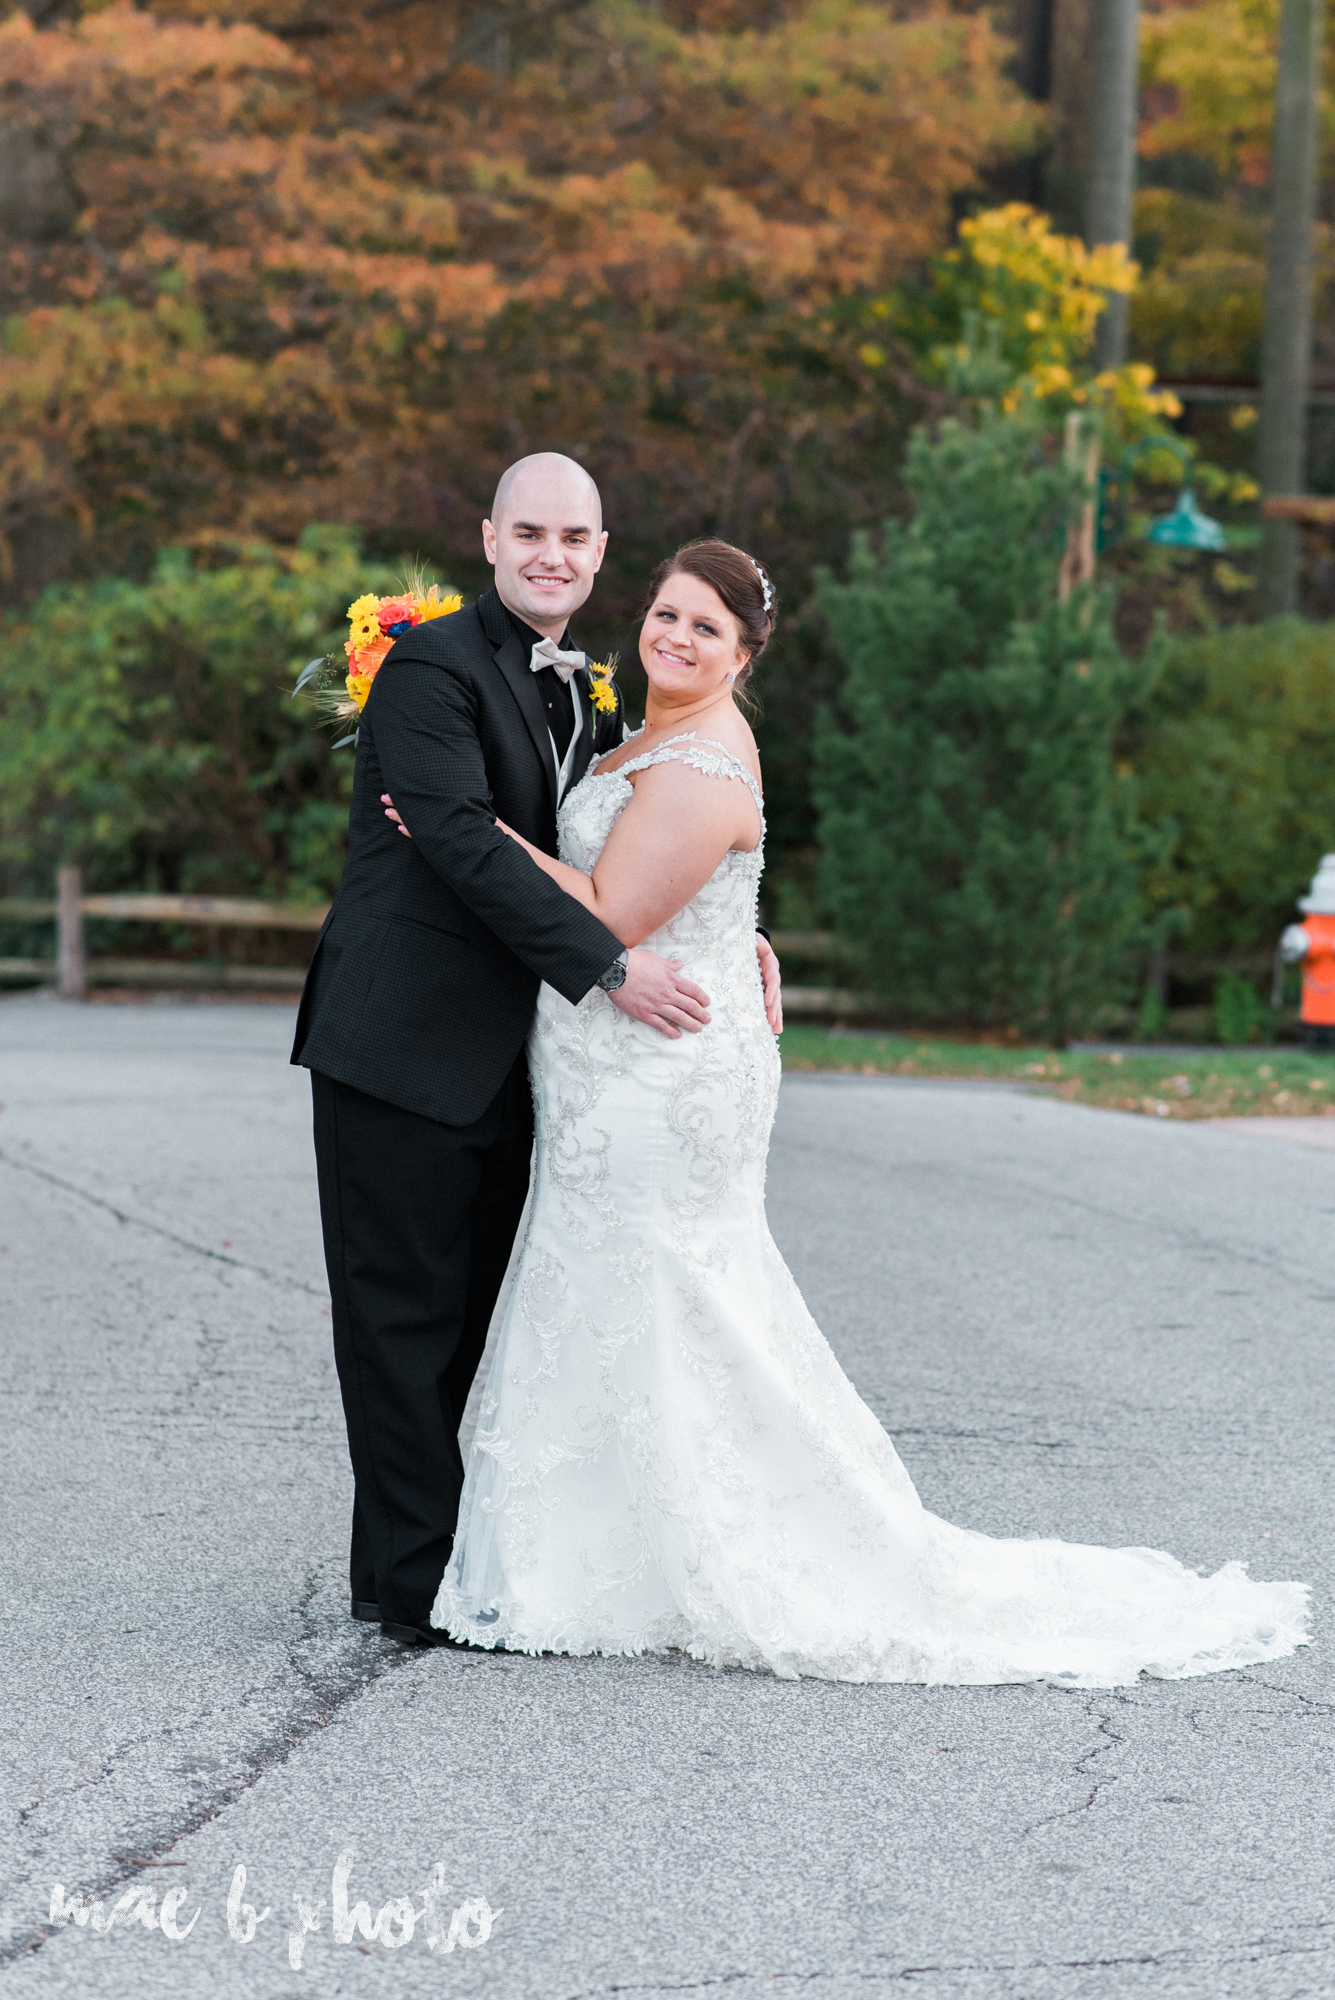 kaylynn & matt's fall zoo wedding at the cleveland metroparks zoo in cleveland ohio photographed by mae b photo-21.jpg